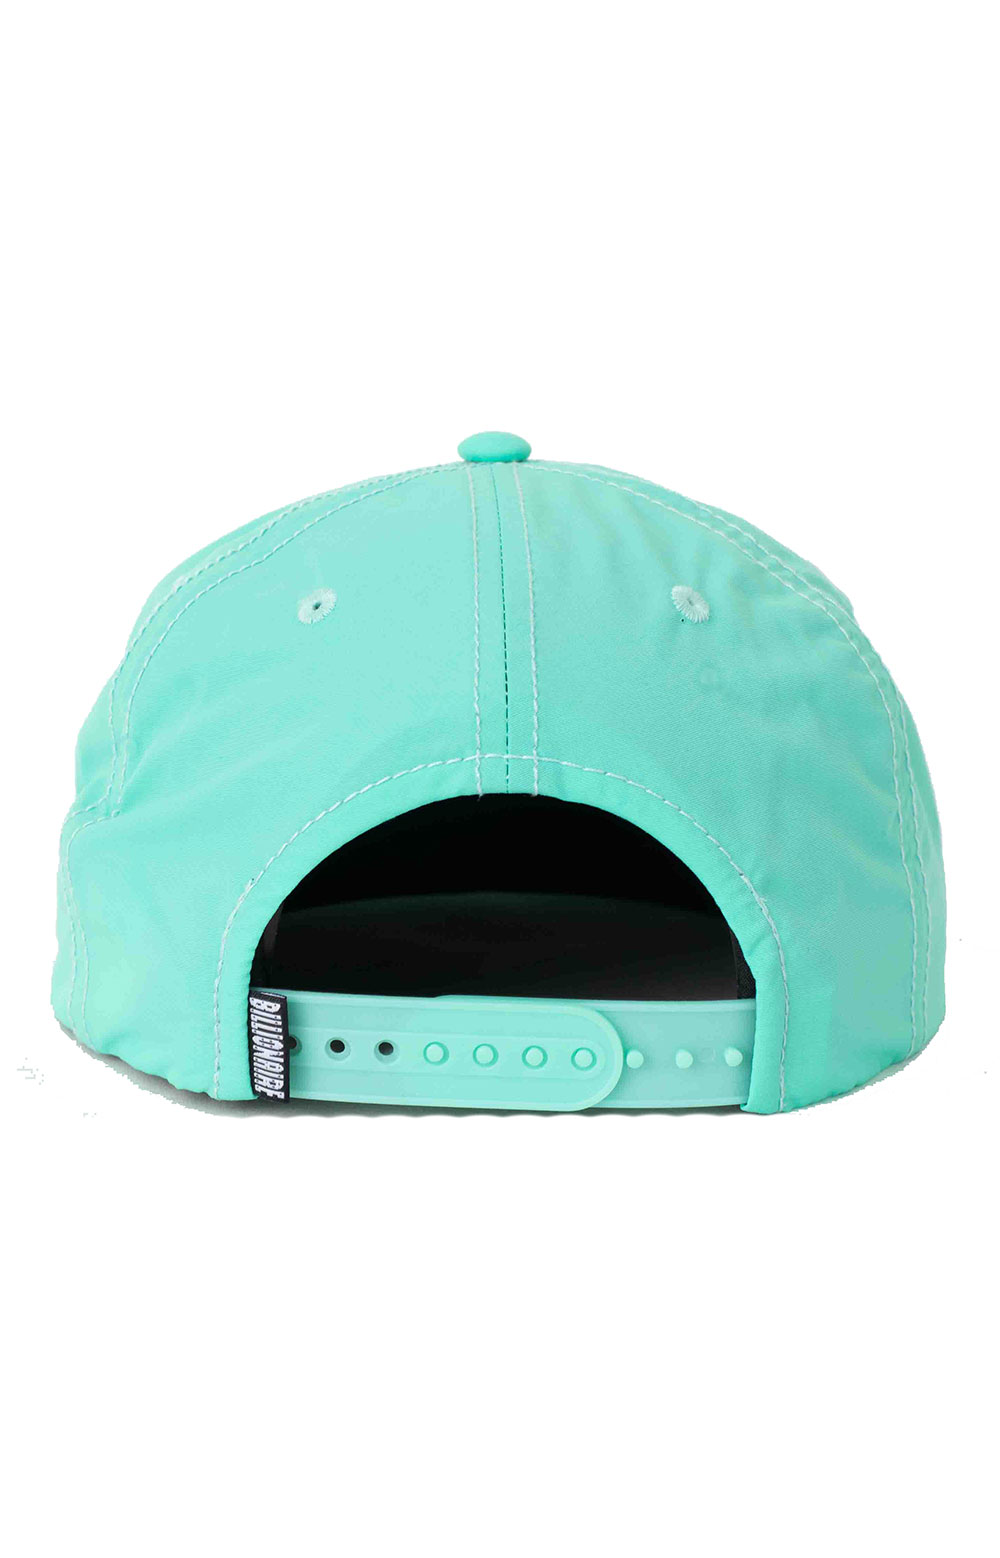 Clubhouse Snap-Back Hat - Spring Bud  3